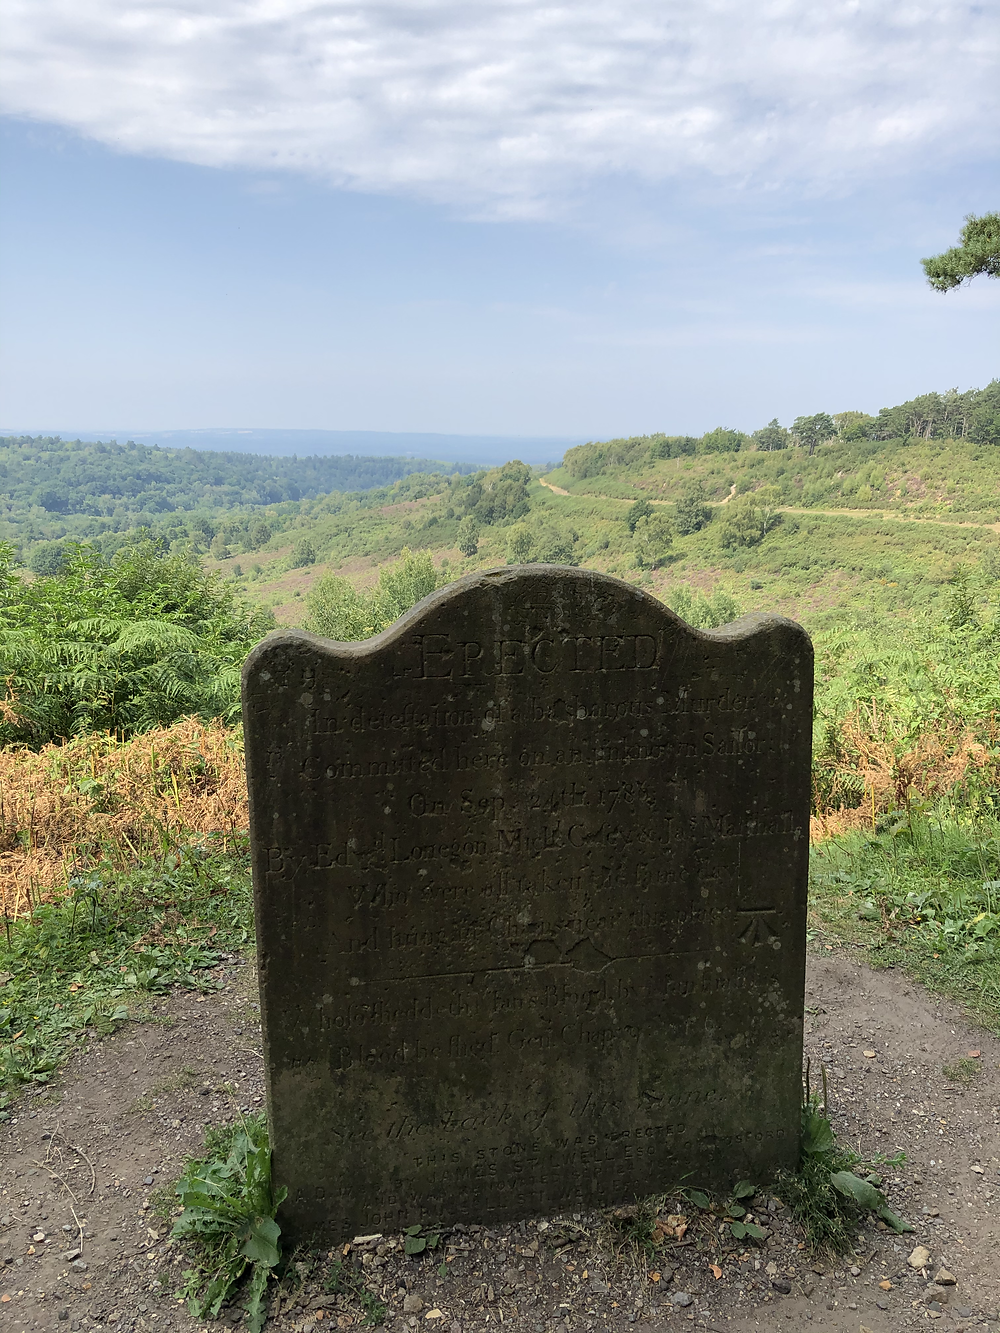 The Sailors stone with views over the devils punch bowl